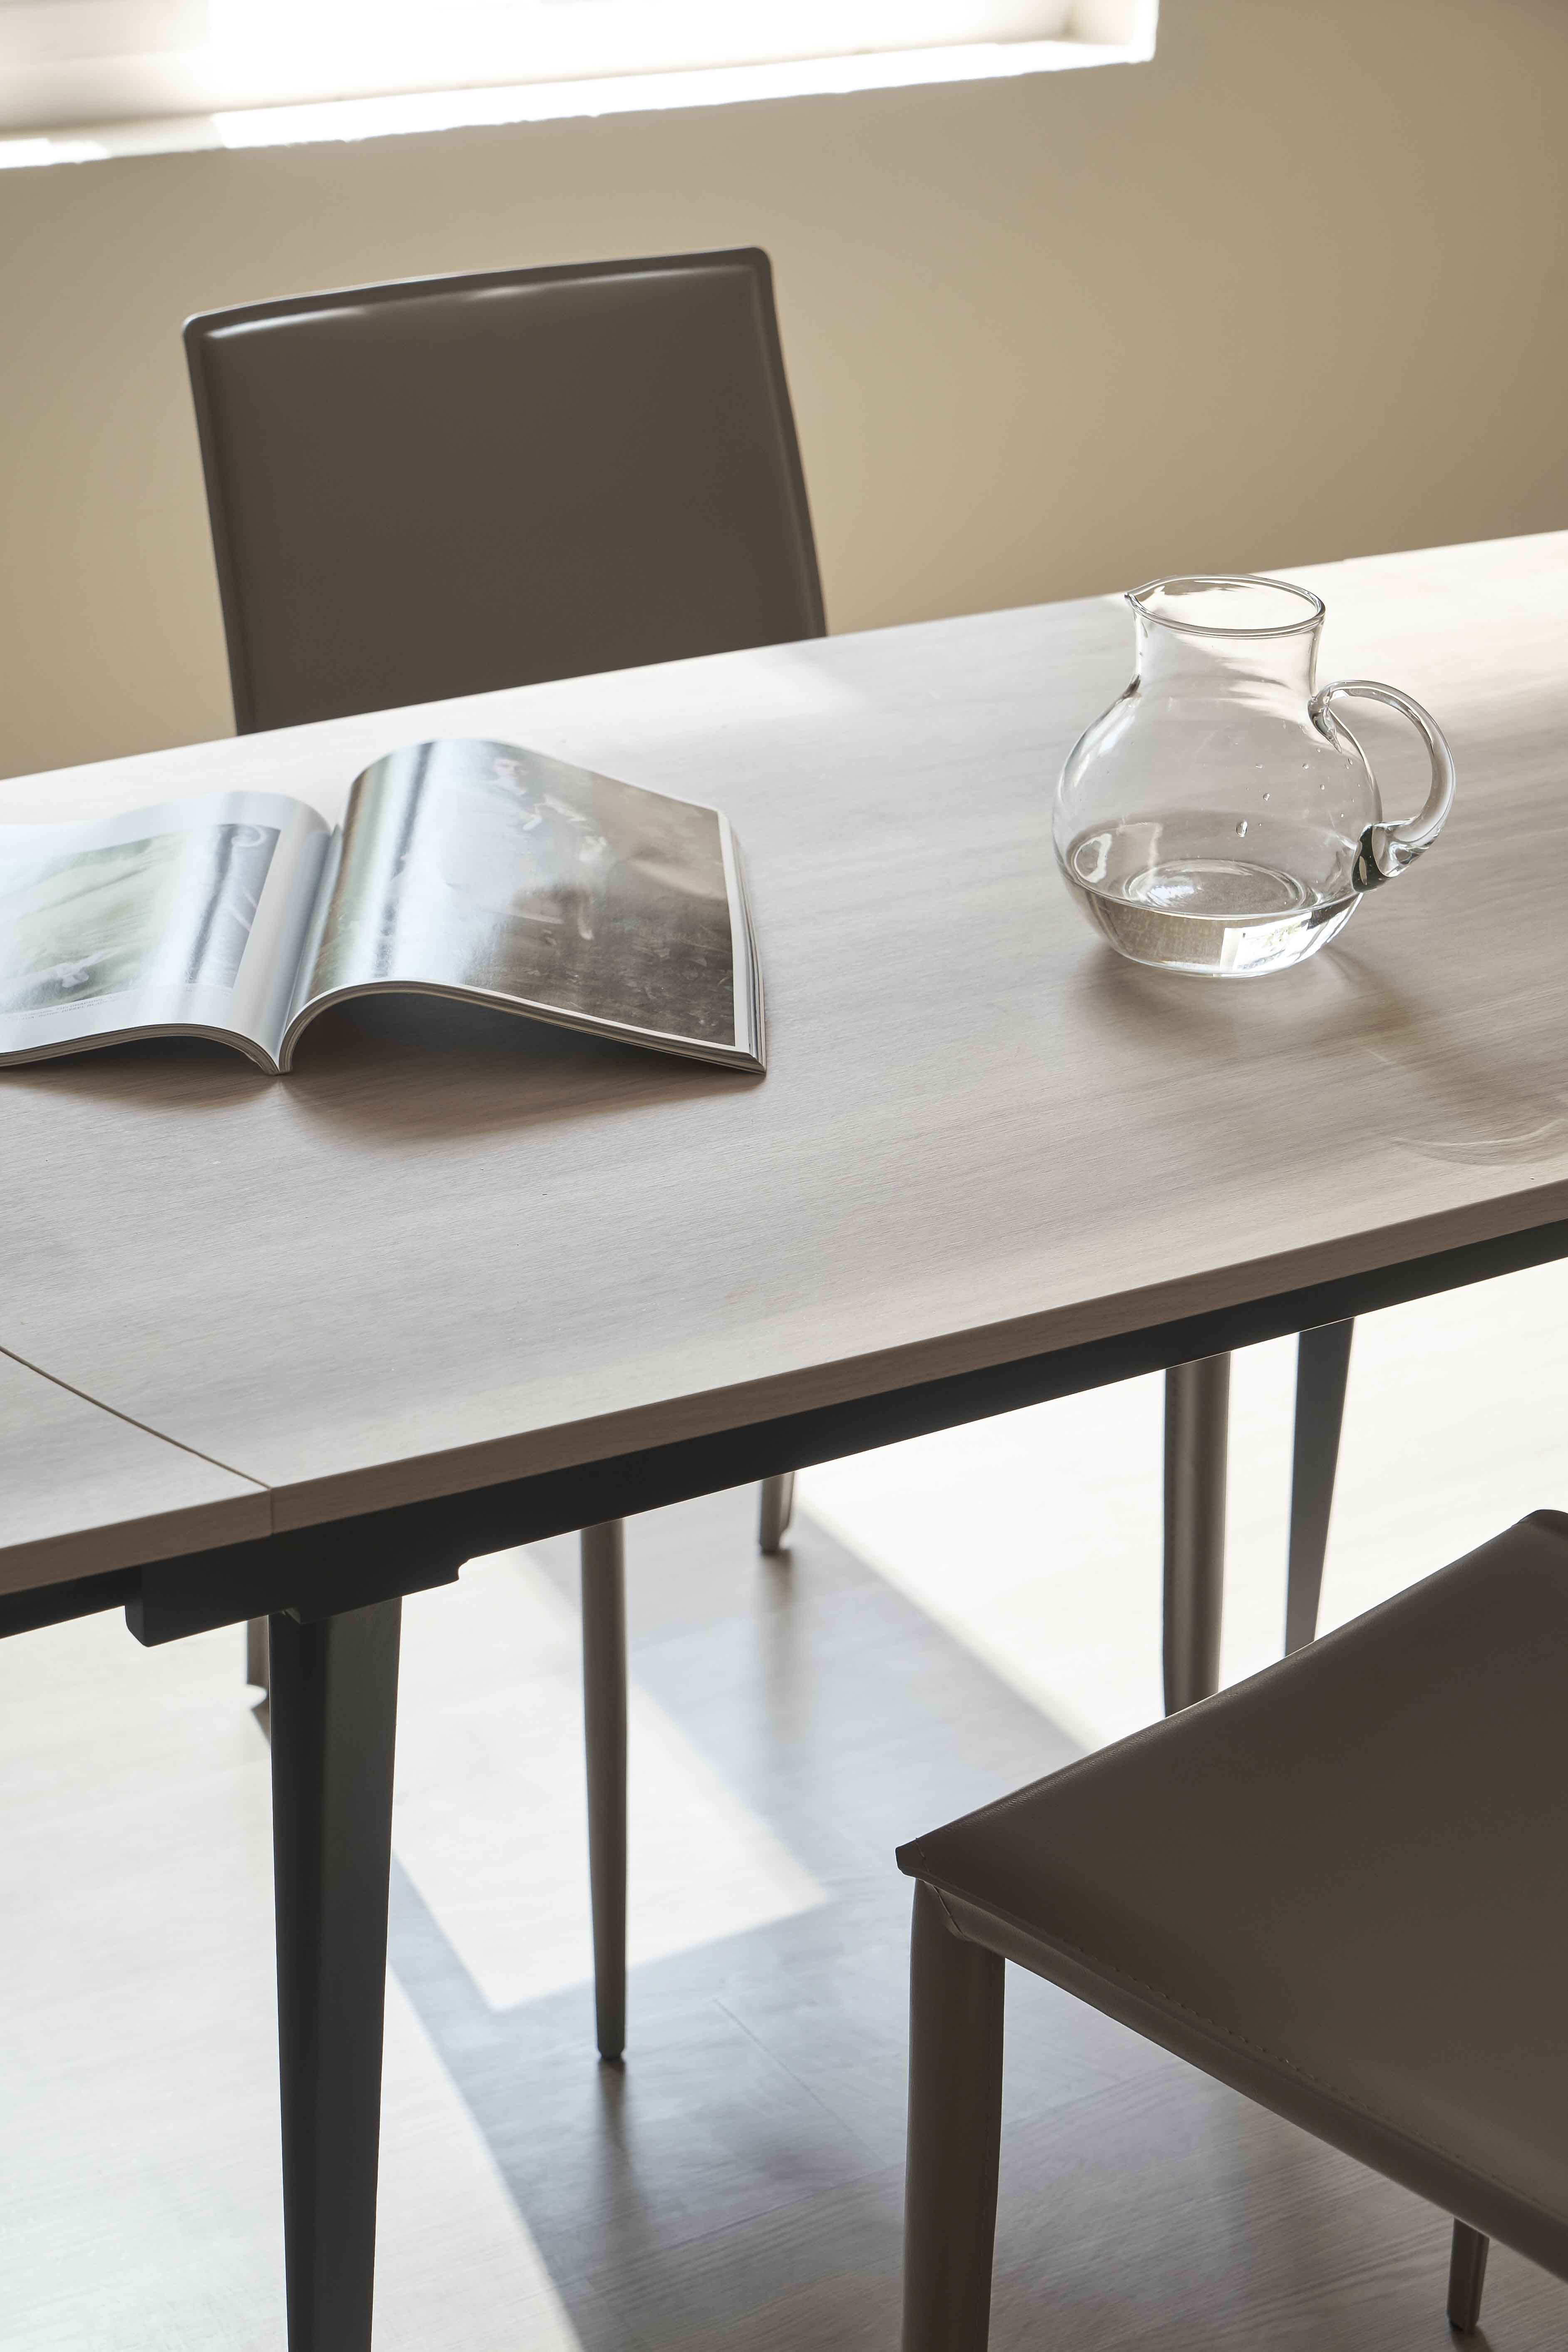 Stephen dining table 03